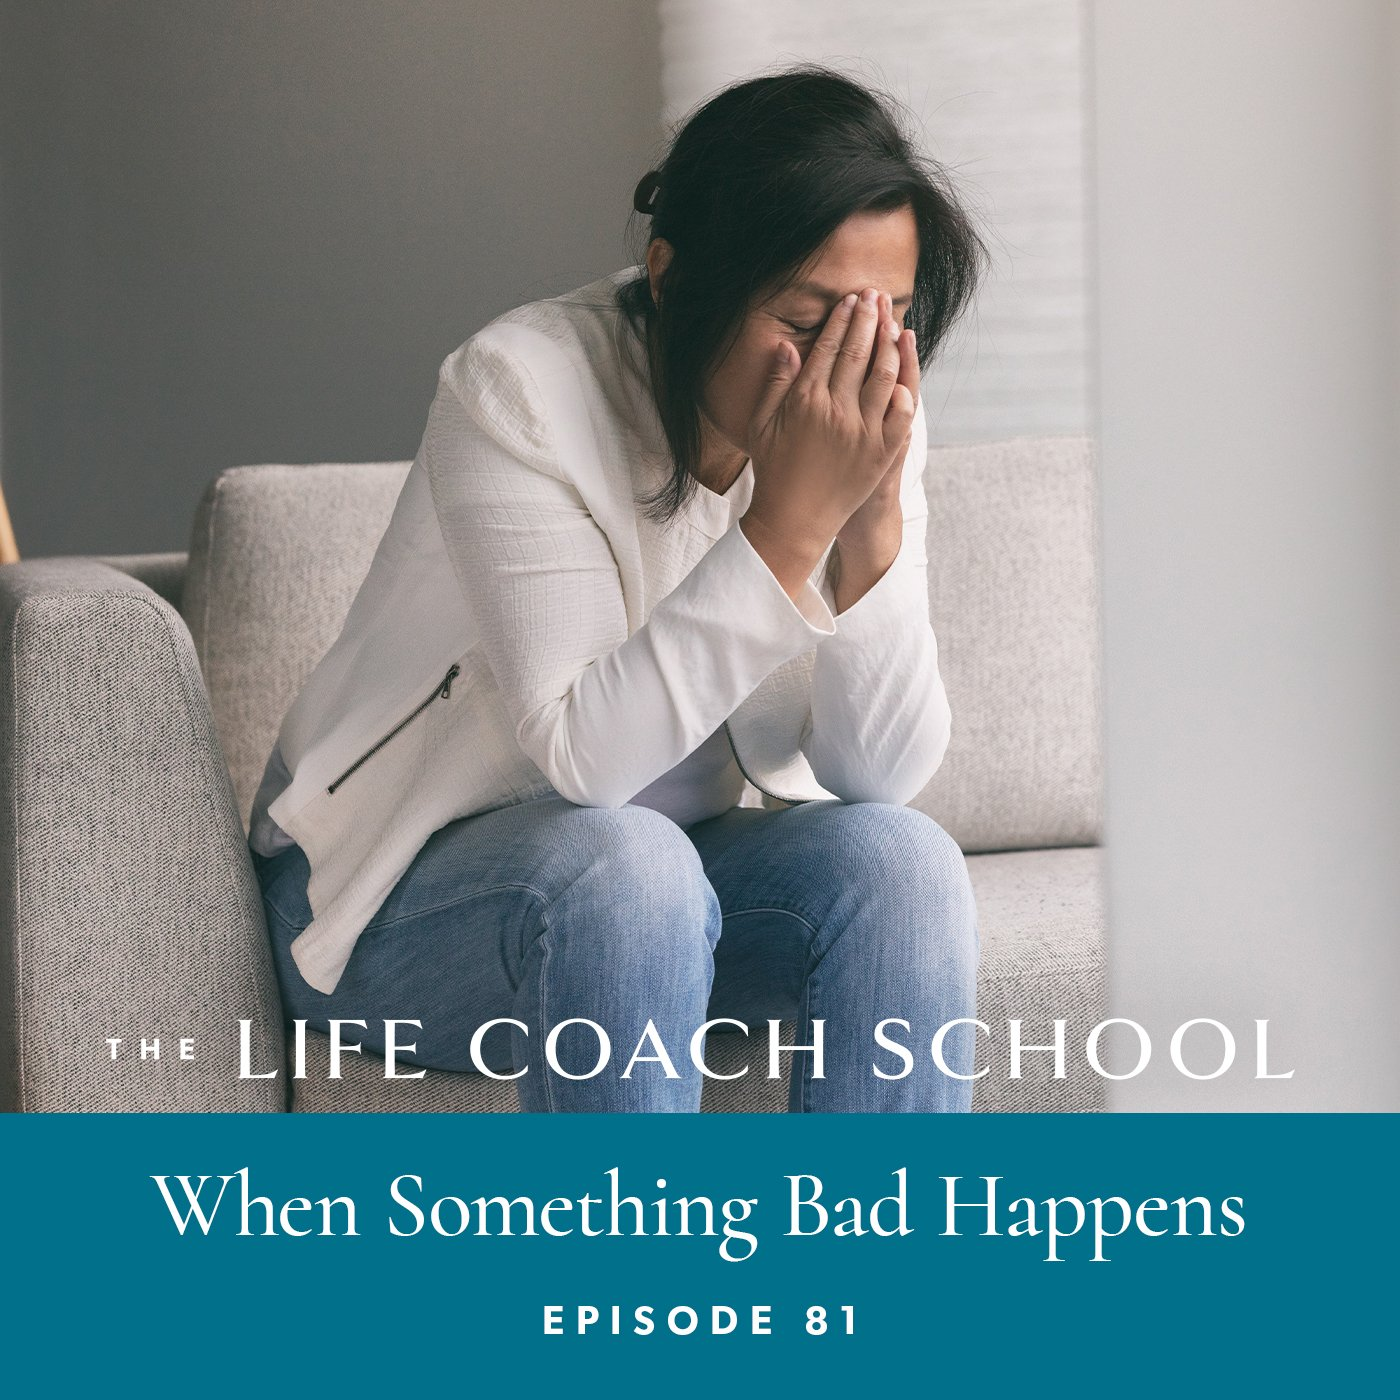 The Life Coach School Podcast with Brooke Castillo | Episode 81 | When Something Bad Happens